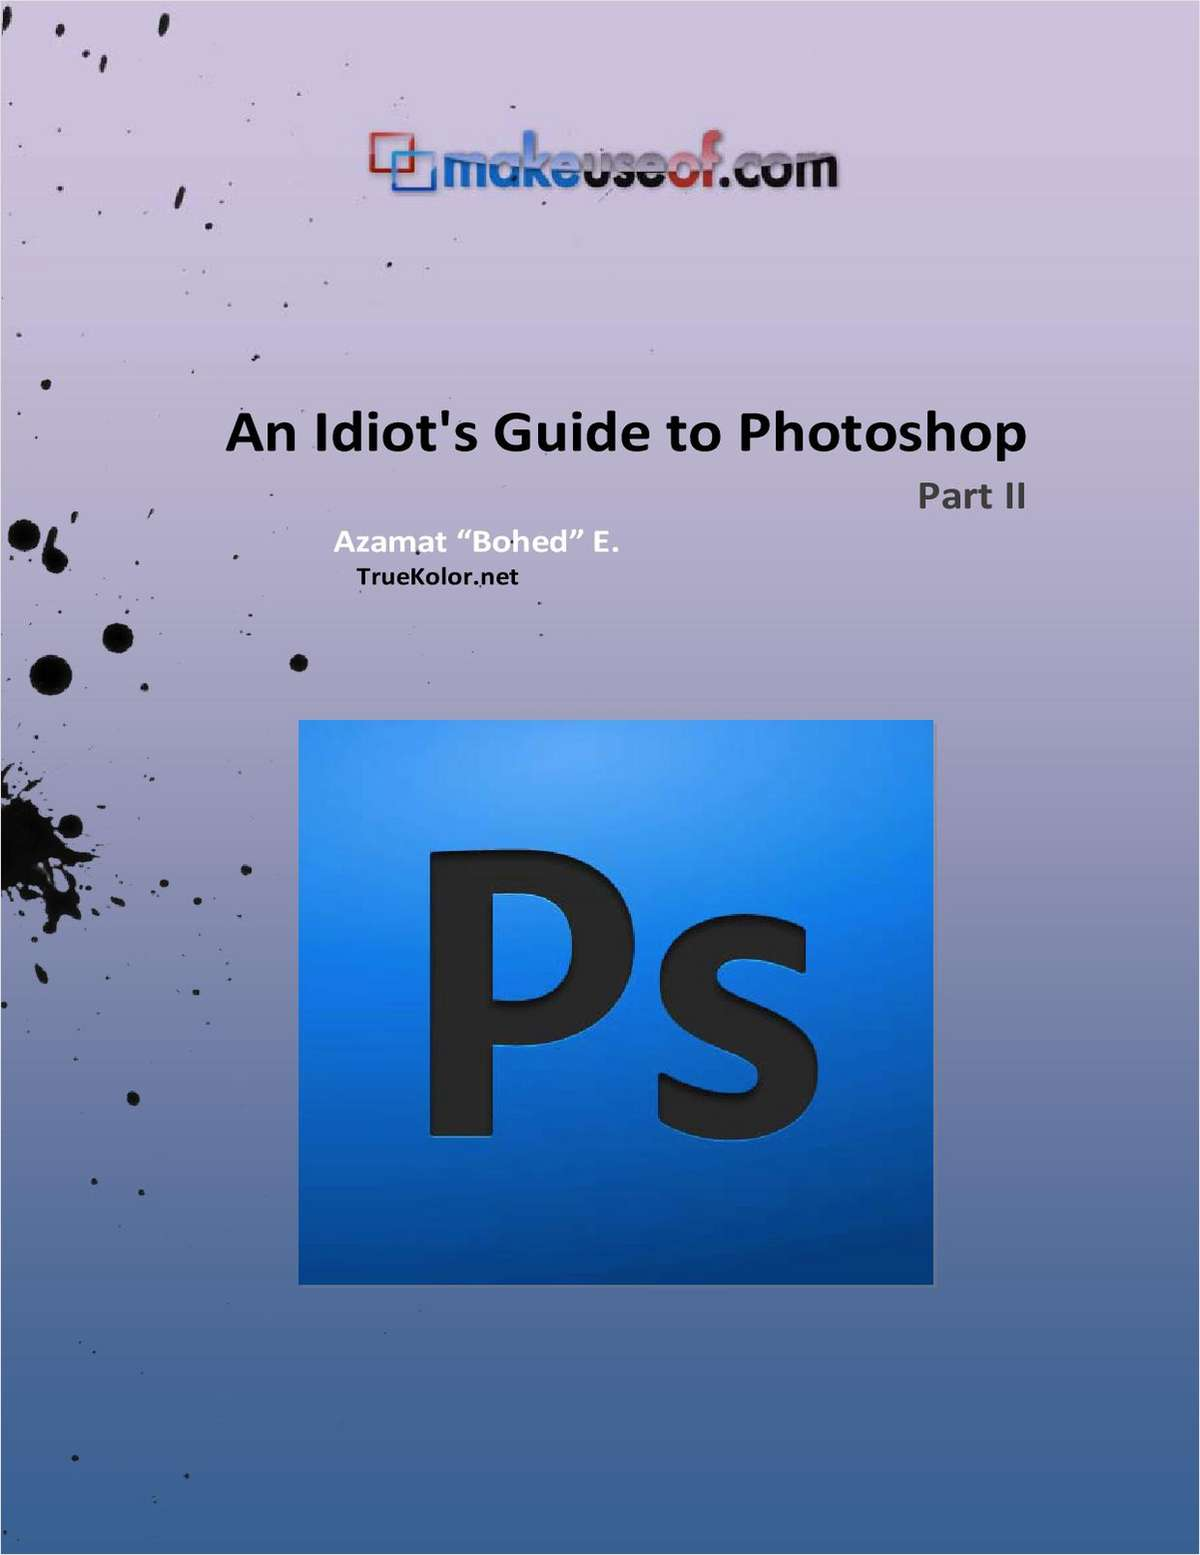 An Idiot's Guide To Photoshop - Part II